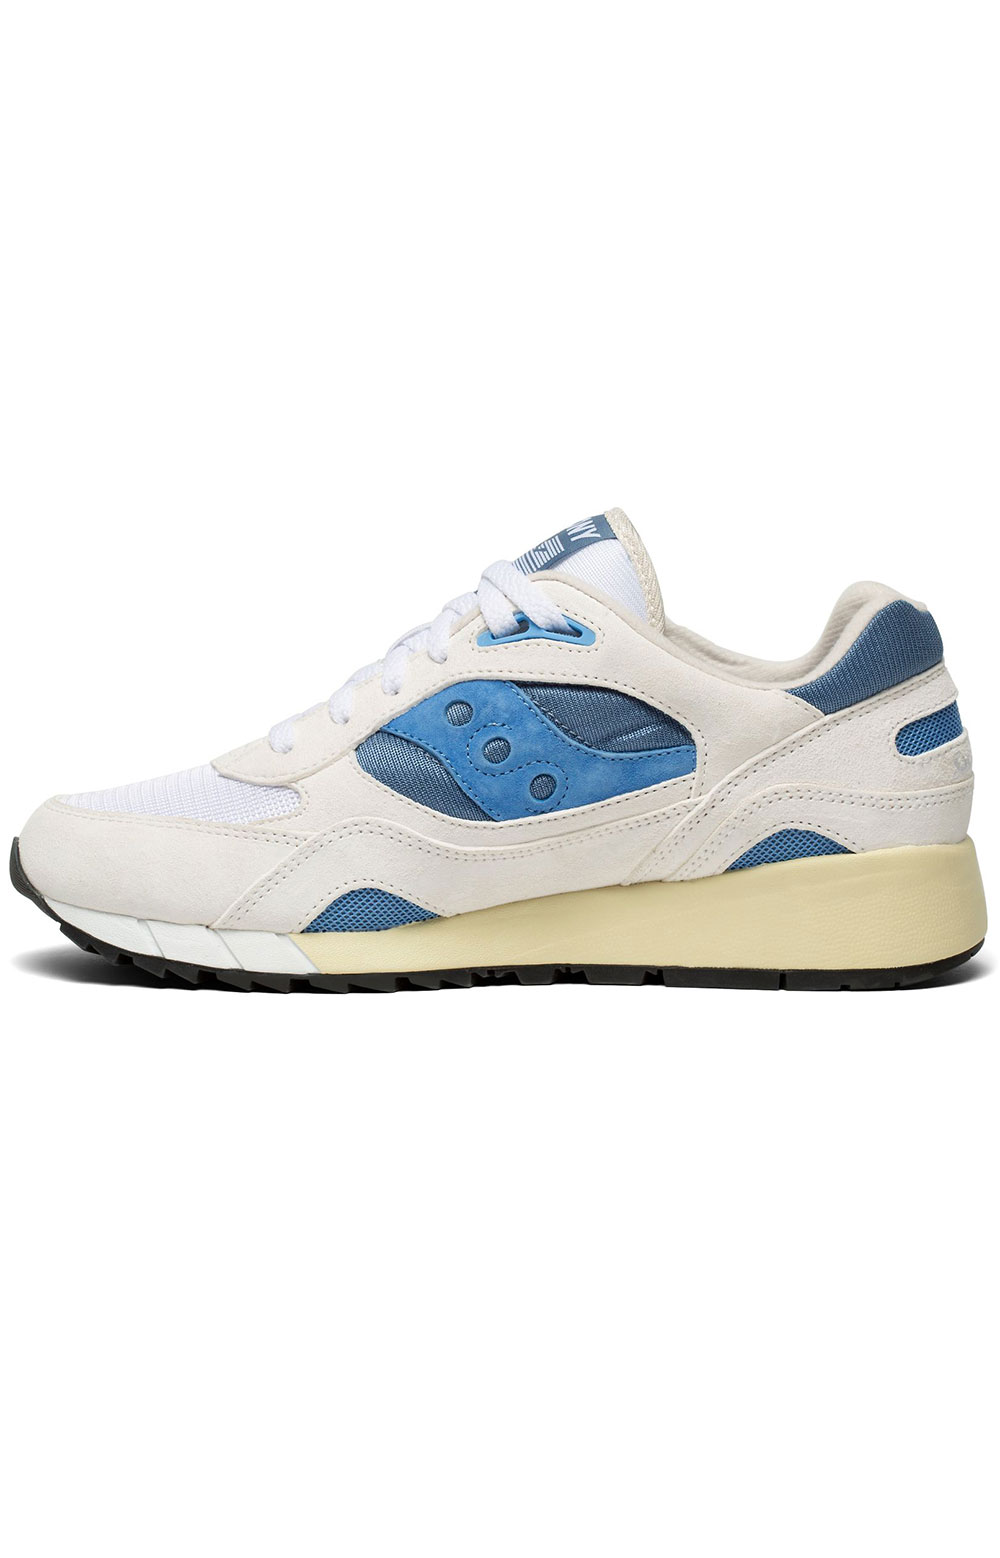 (S70441-13) Shadow 6000 Shoes - White/Blue 2